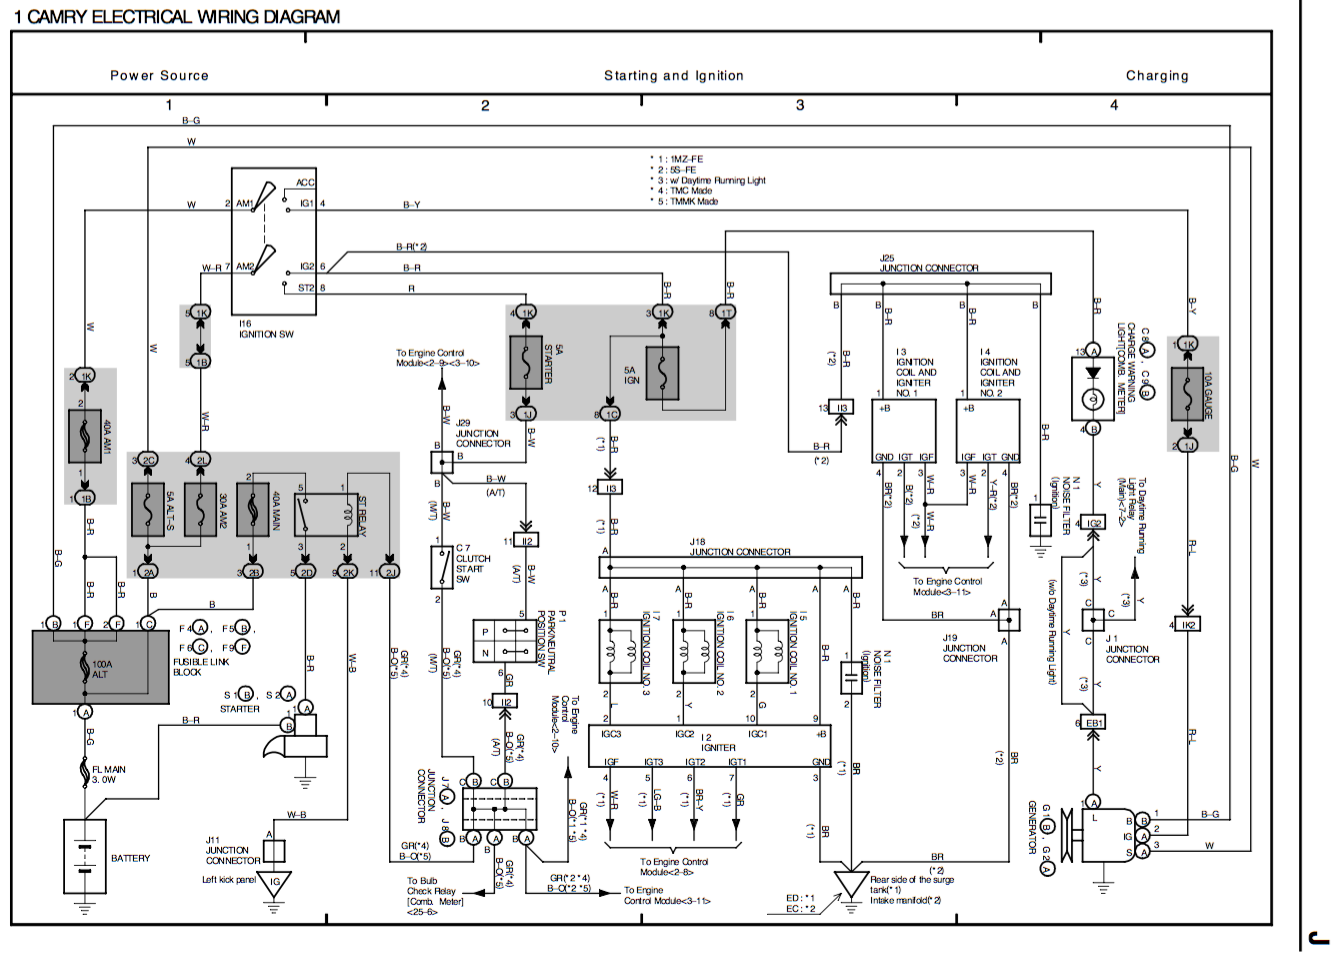 Rx7 Engine Control Fuel Control And Ignition System Wiring Diagram